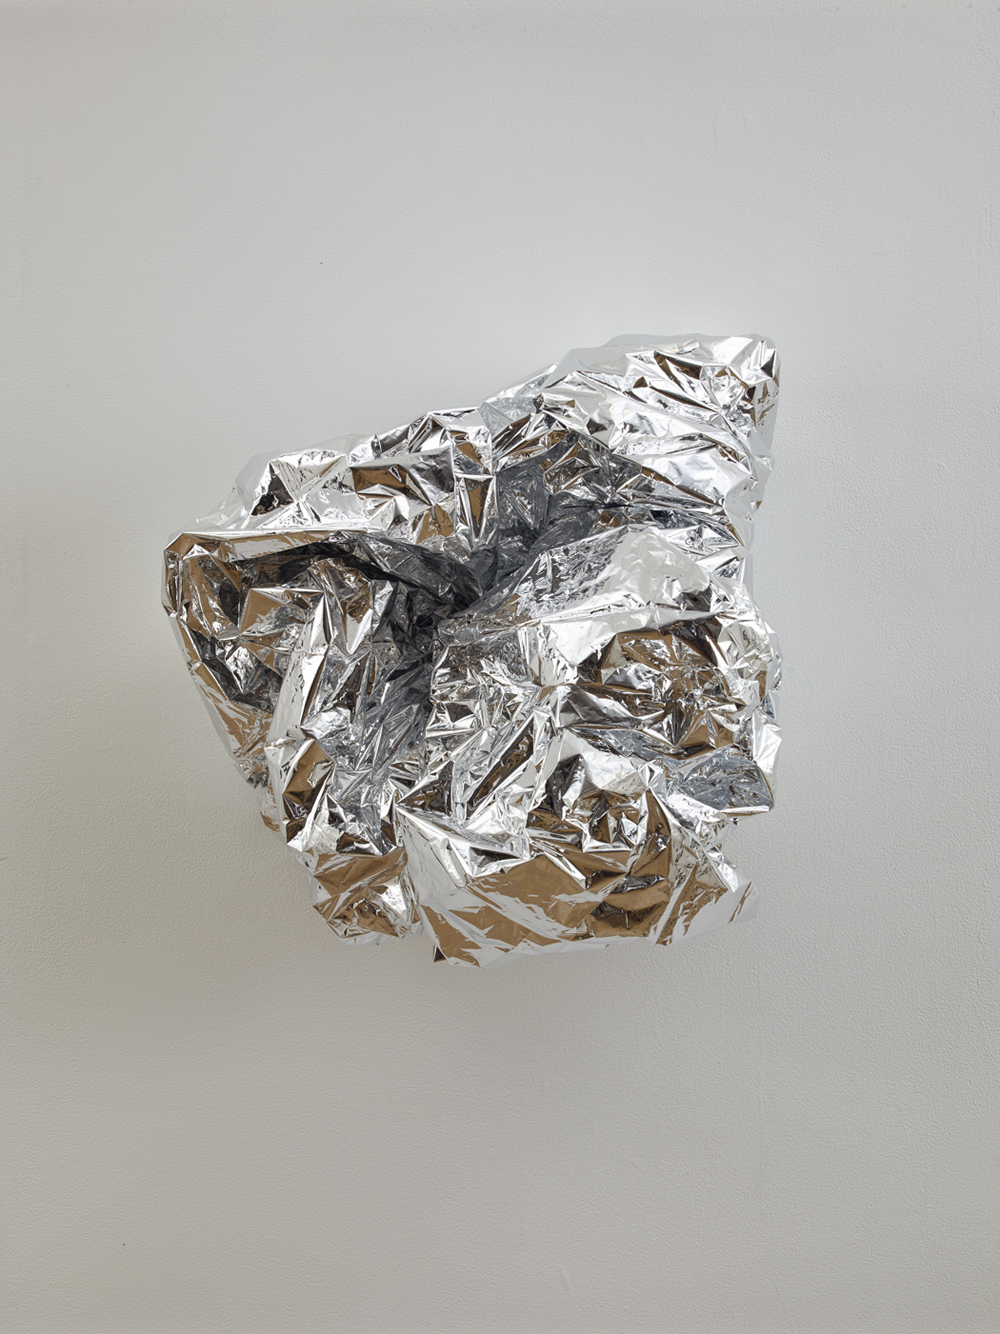 TONY FEHER   Konder Massif , 2013 Mylar rescue blanket 21 x 19 x 13 inches